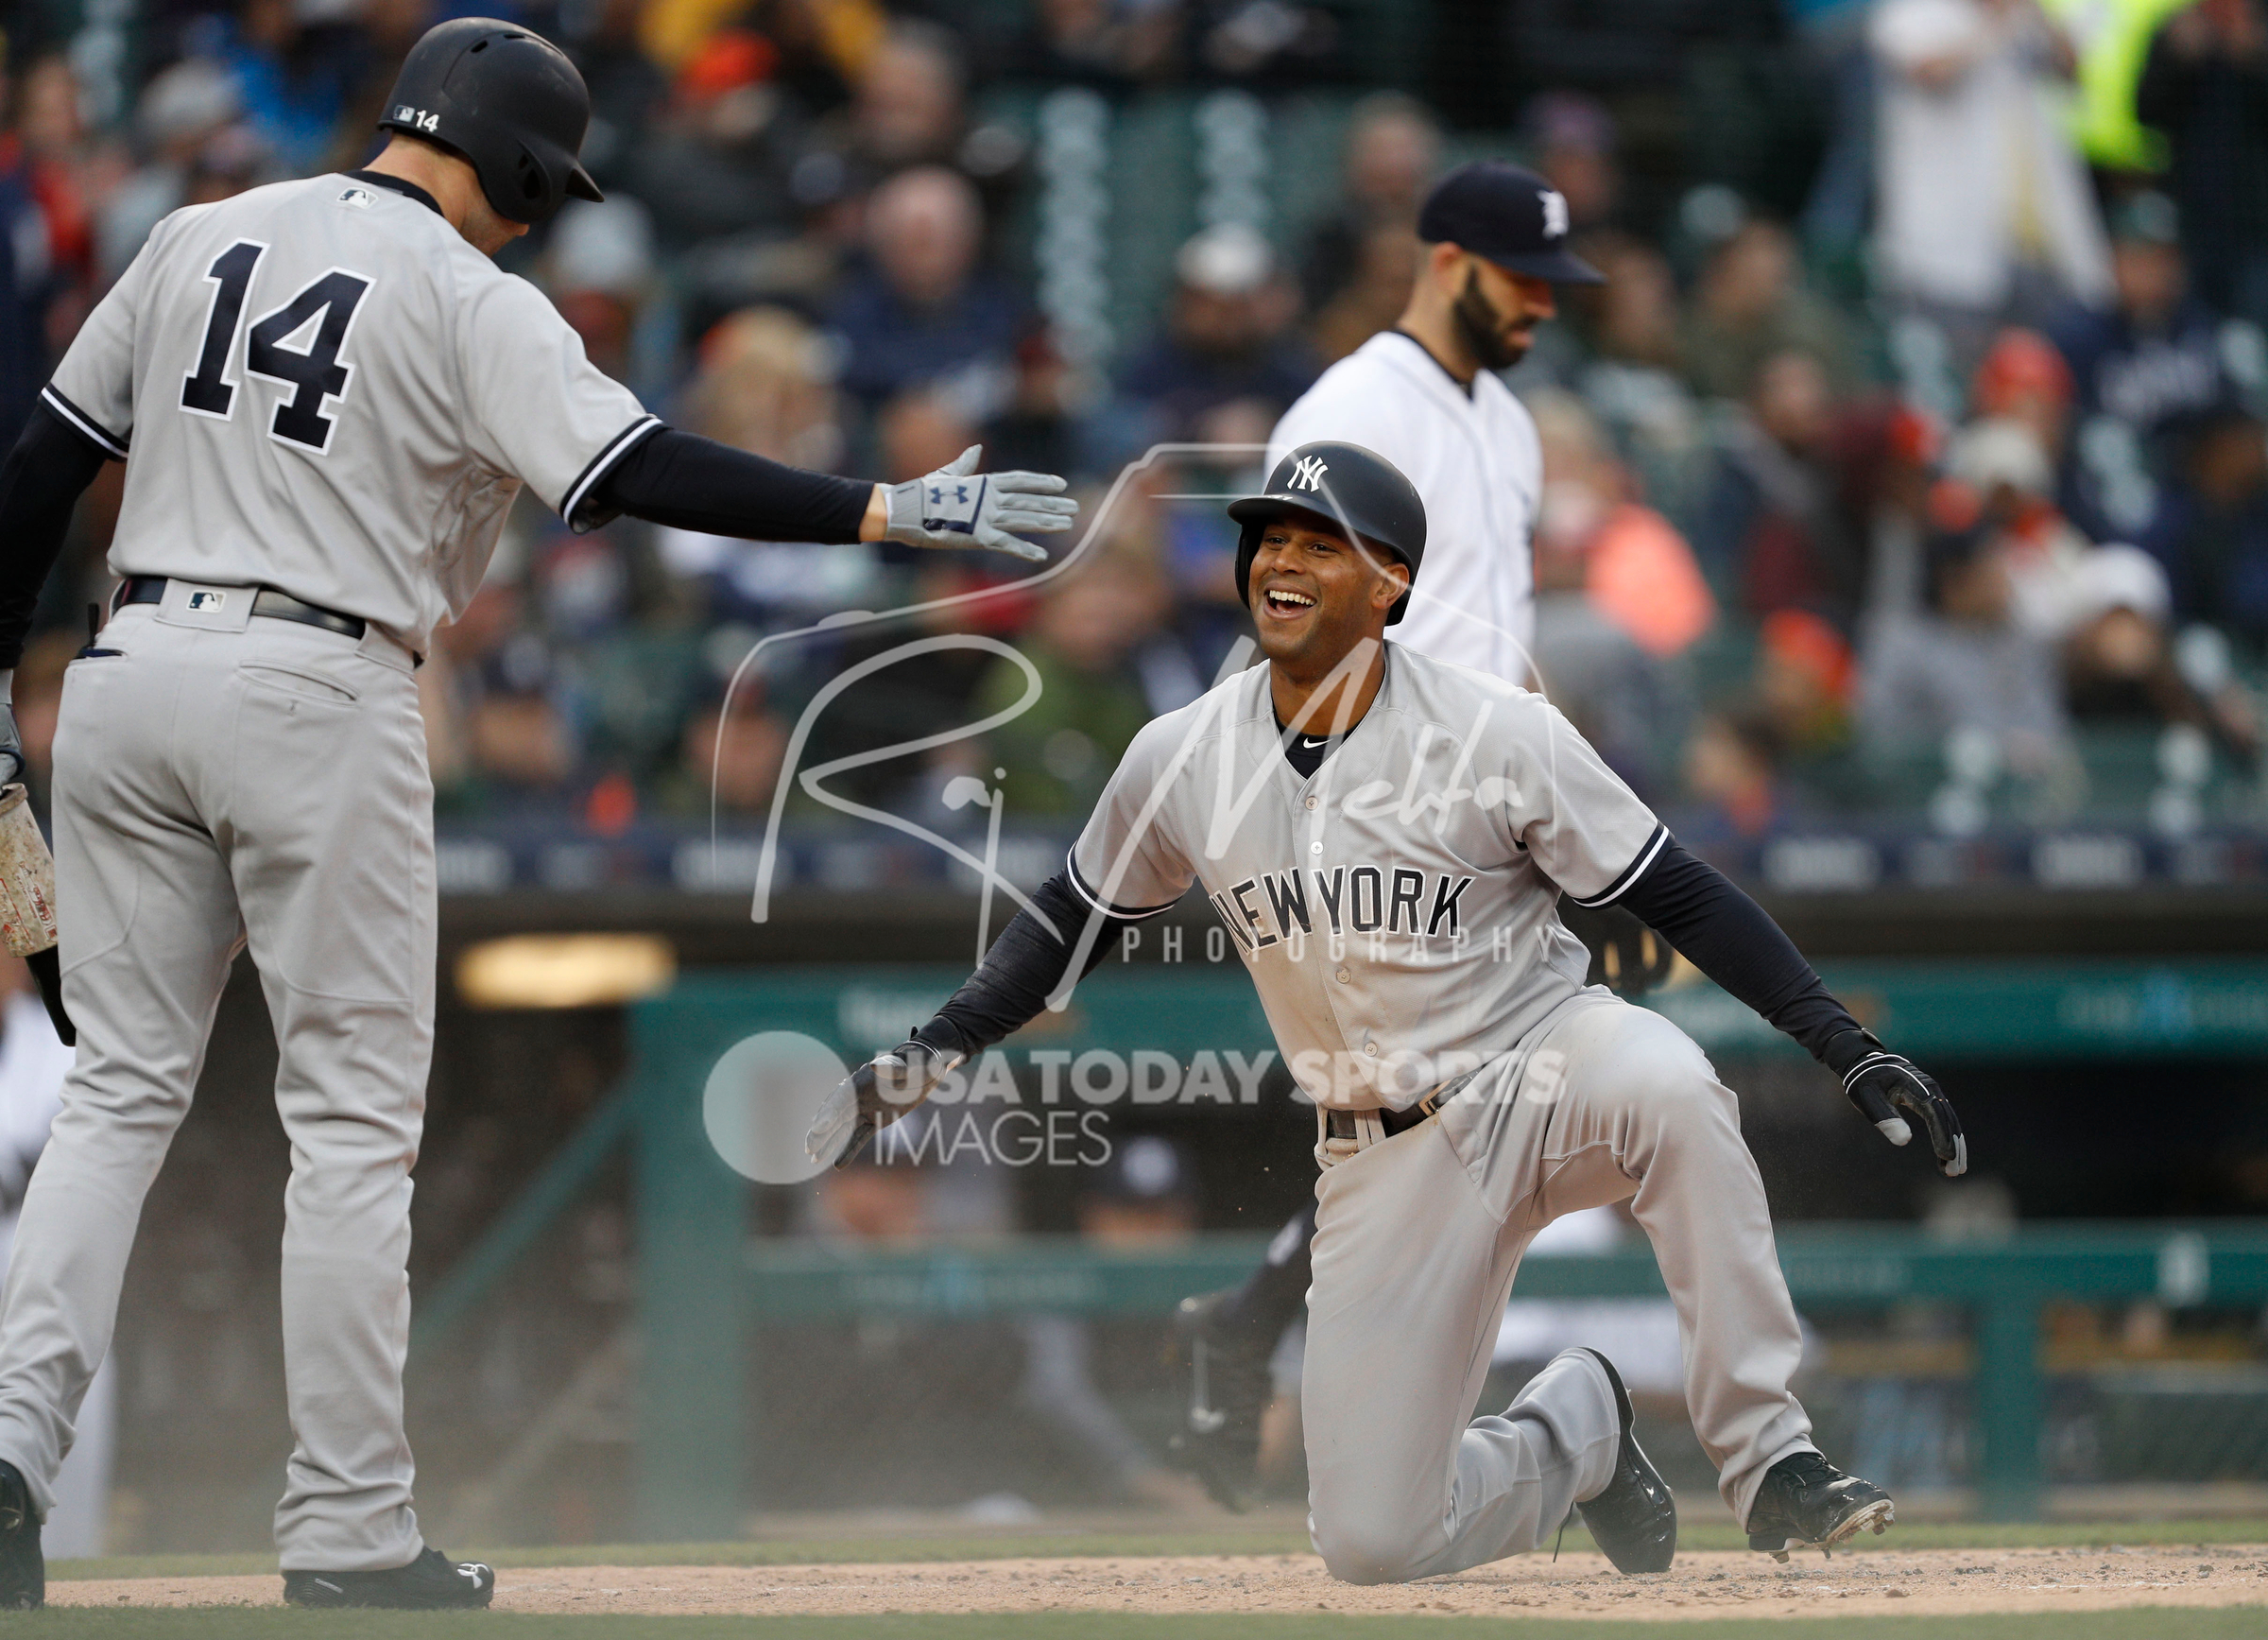 Apr 13, 2018; Detroit, MI, USA; New York Yankees center fielder Aaron Hicks (31) gets up to celebrate with second baseman Neil Walker (14) after sliding for a two run inside the park home run during the second inning against the Detroit Tigers at Comerica Park. Mandatory Credit: Raj Mehta-USA TODAY Sports